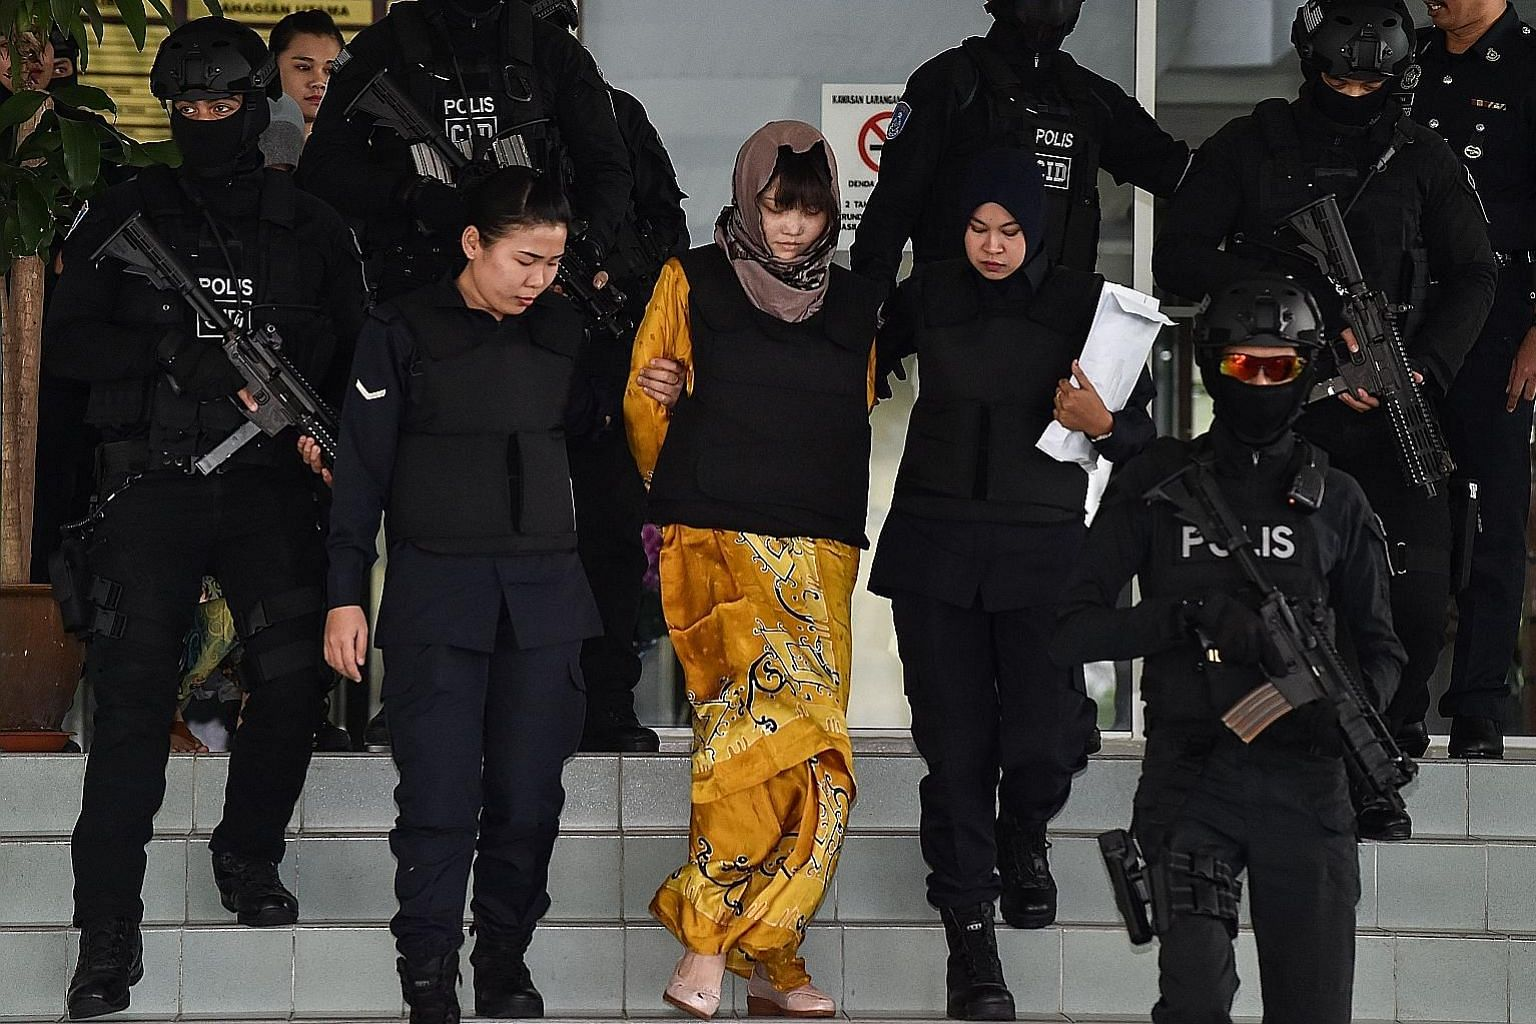 Vietnamese suspect Doan Thi Huong being escorted by Malaysian police after a court session for her trial at the Shah Alam High Court in Shah Alam, outside Kuala Lumpur, yesterday. She was allegedly involved in the assassination of Mr Kim Jong Nam, th